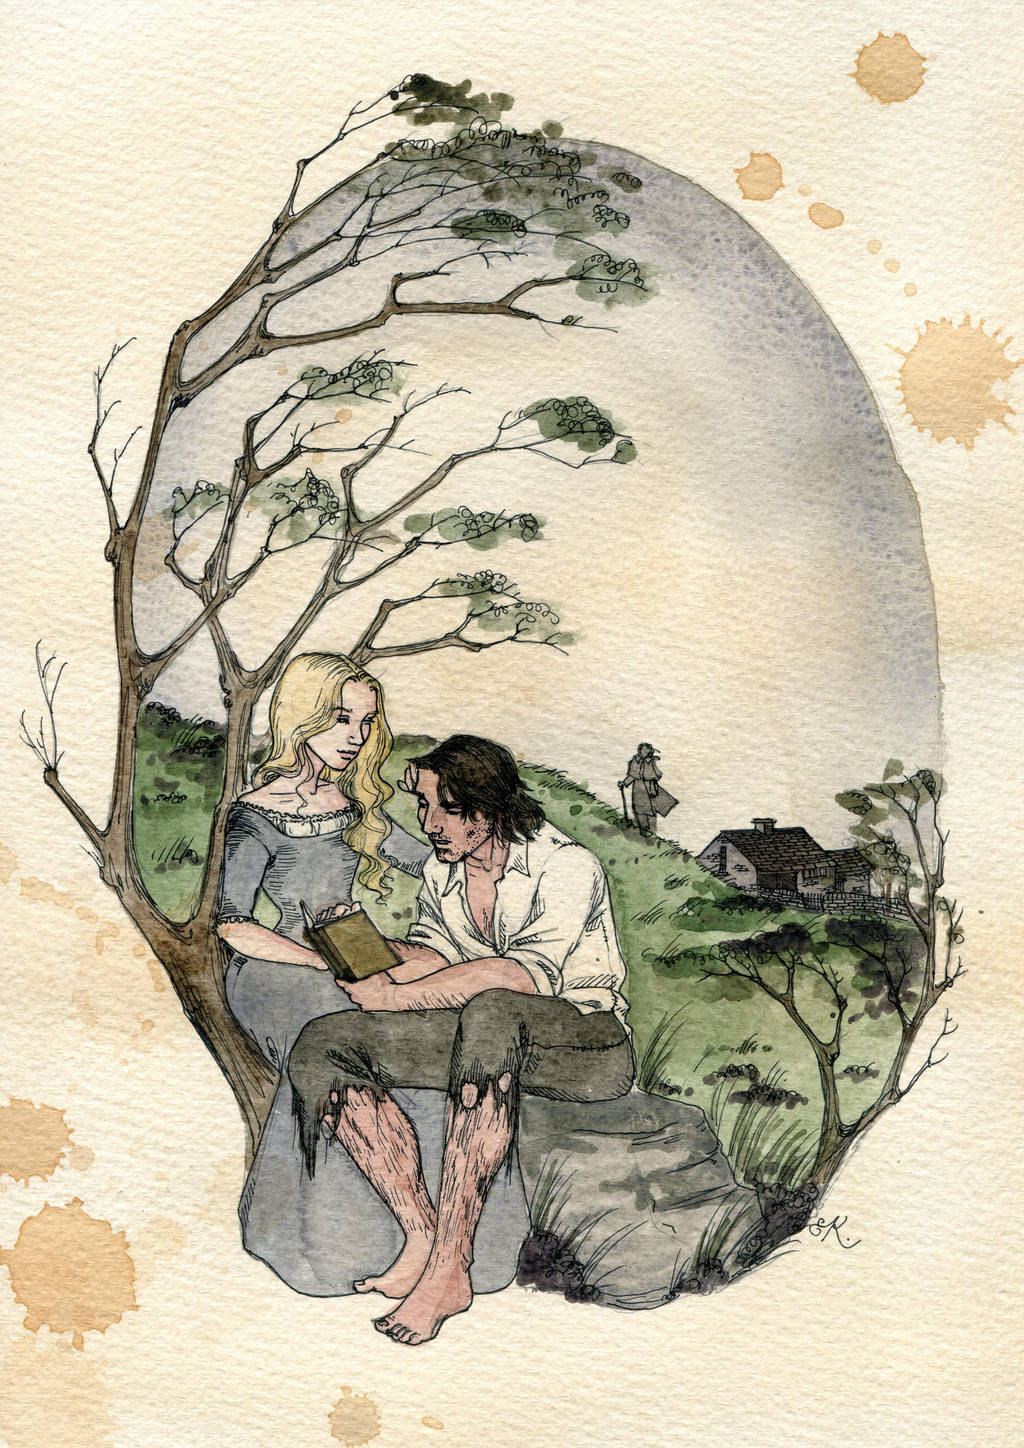 A watercolor painting of Cathy sitting with Hareton under a tree, teaching him to read.